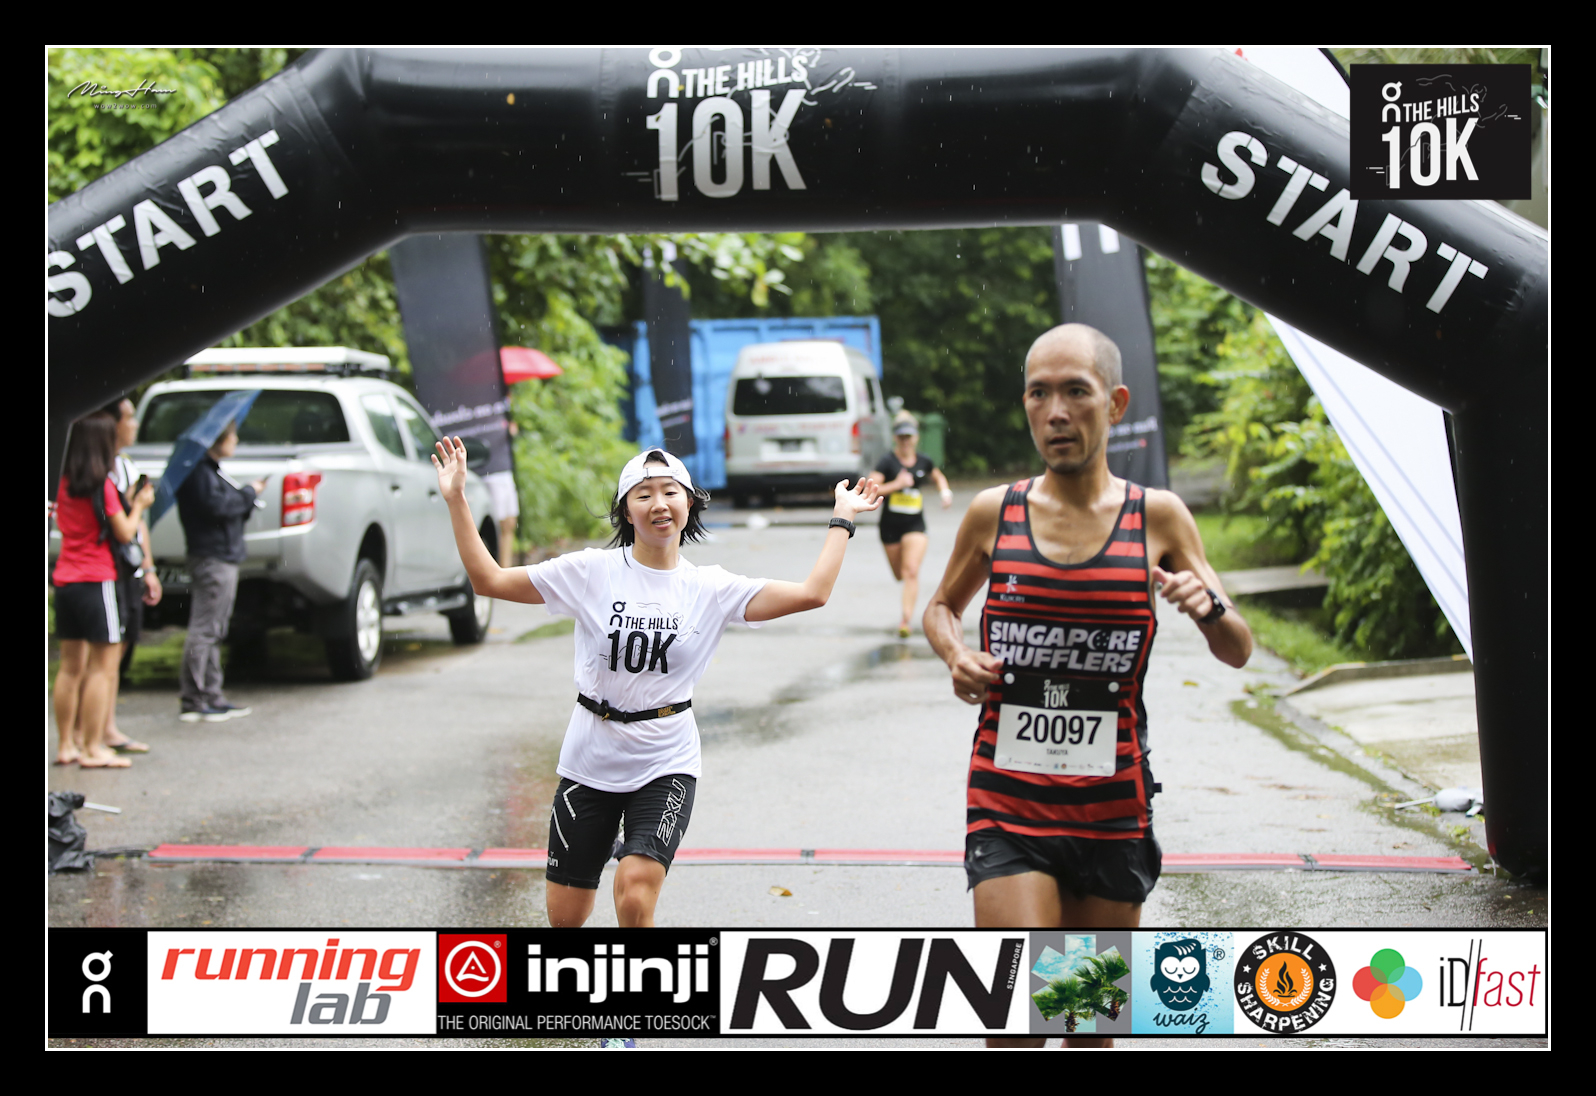 2018_On The Hills 10K_AndyCF_2967